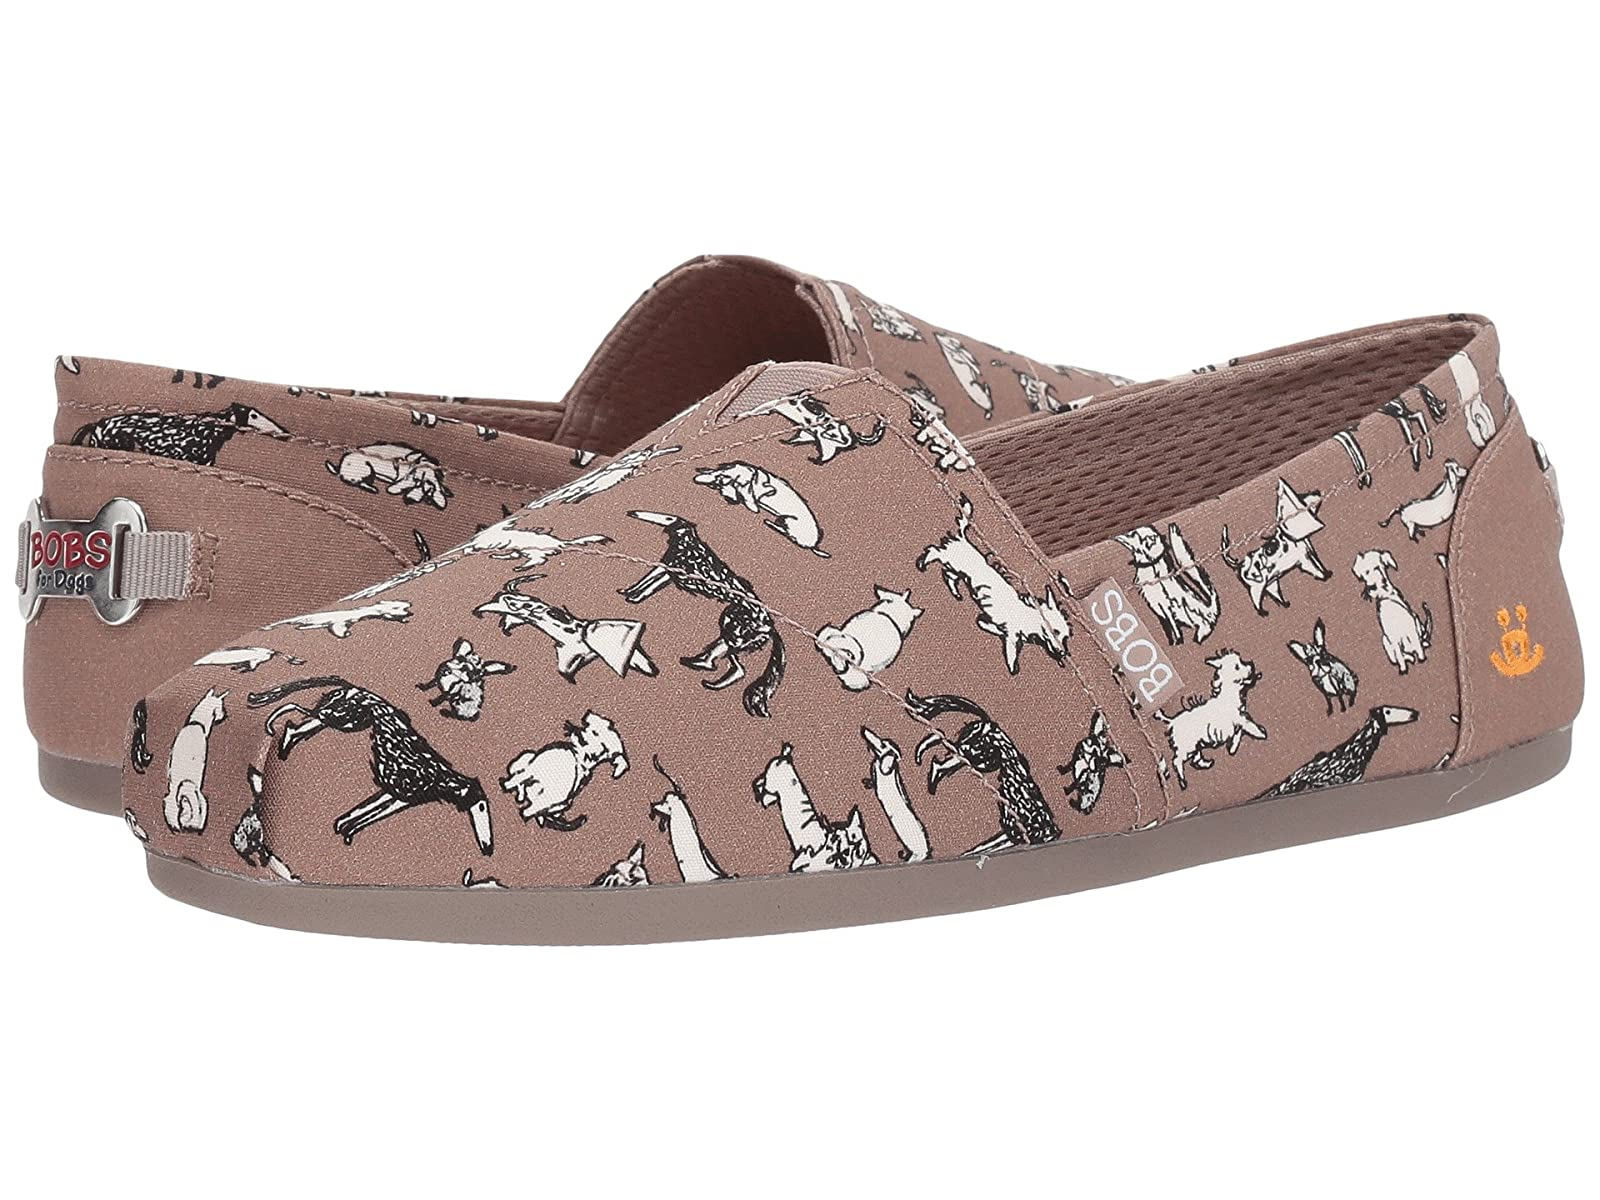 BOBS from SKECHERS Plush - Dream DoodleAtmospheric grades have affordable shoes